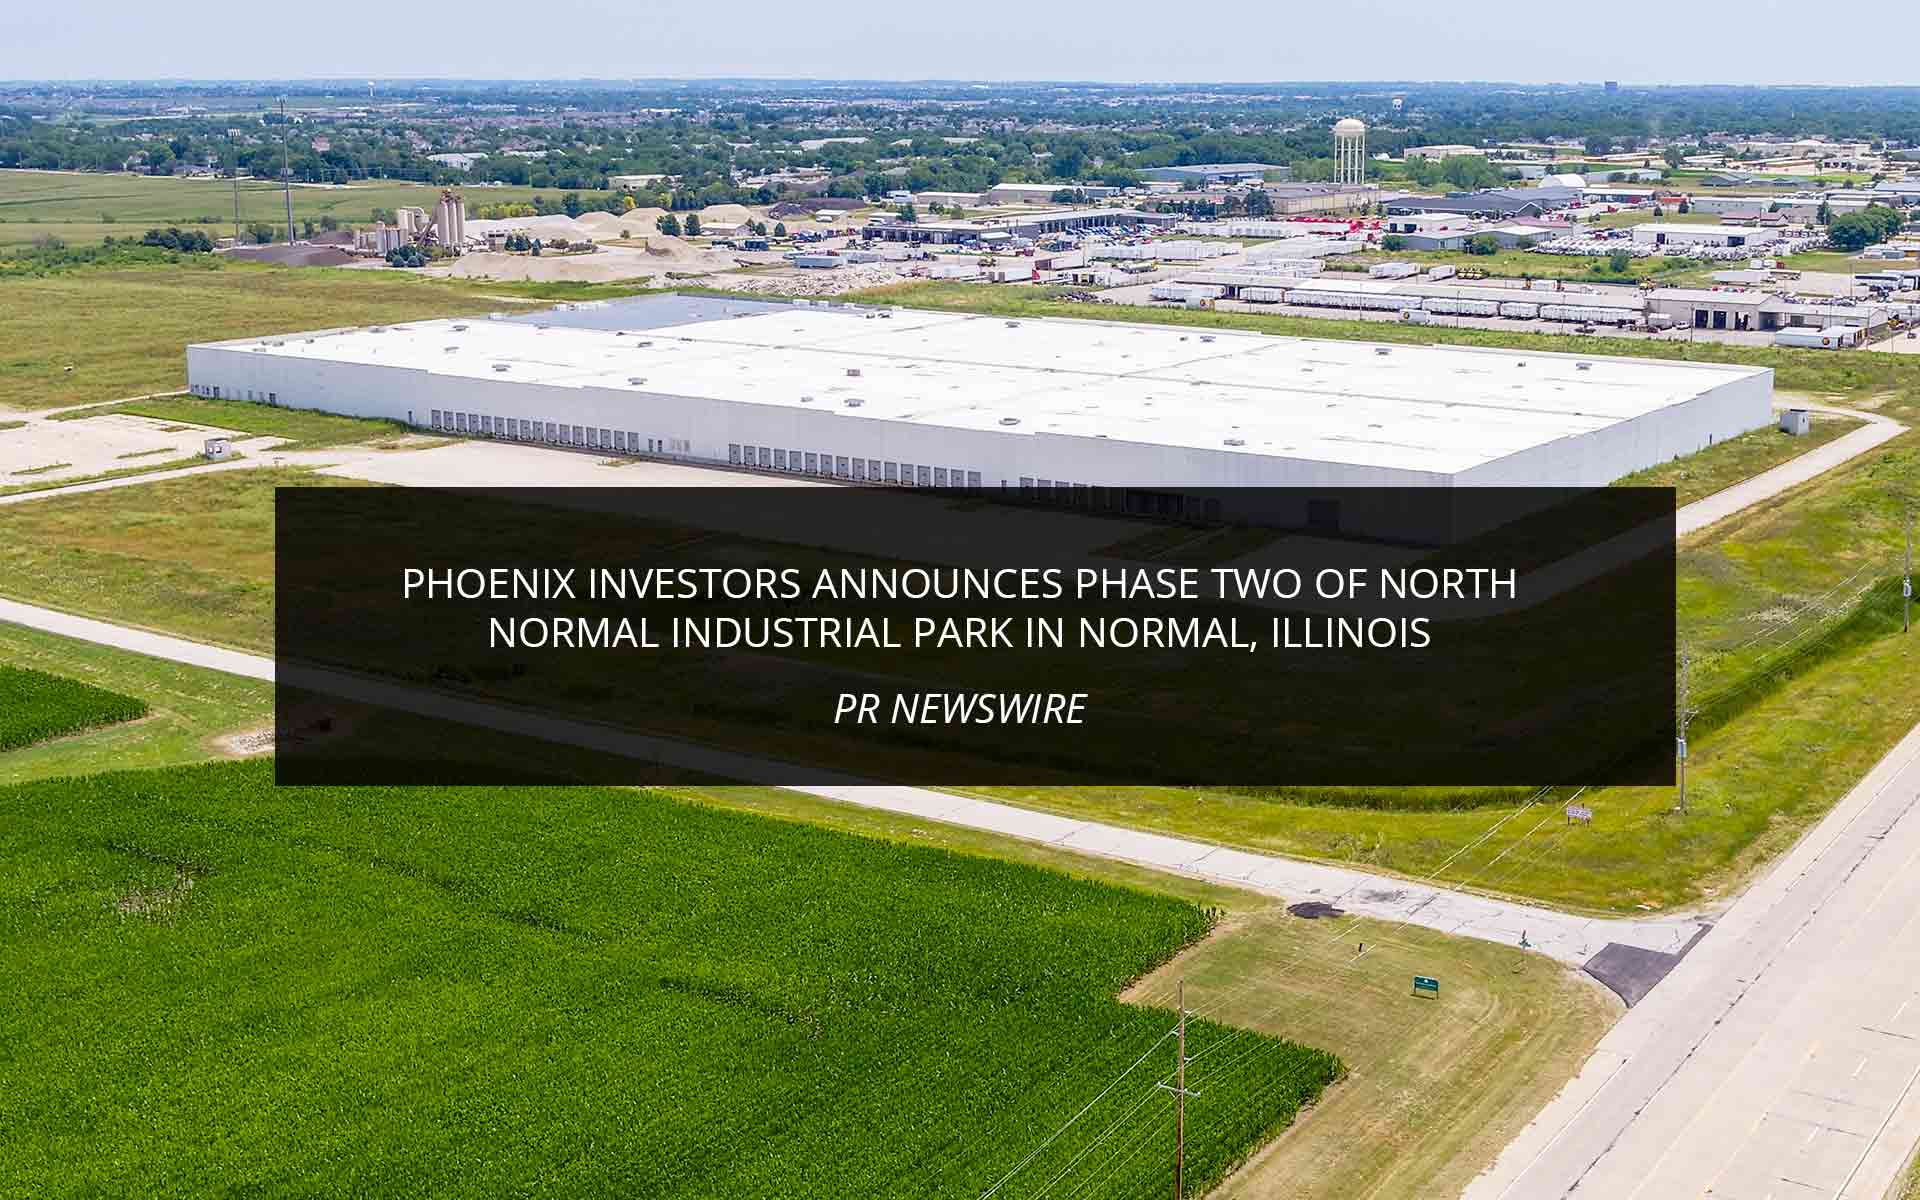 Phoenix Investors Announces Phase Two Of North Normal Industrial Park In Normal, Illinois